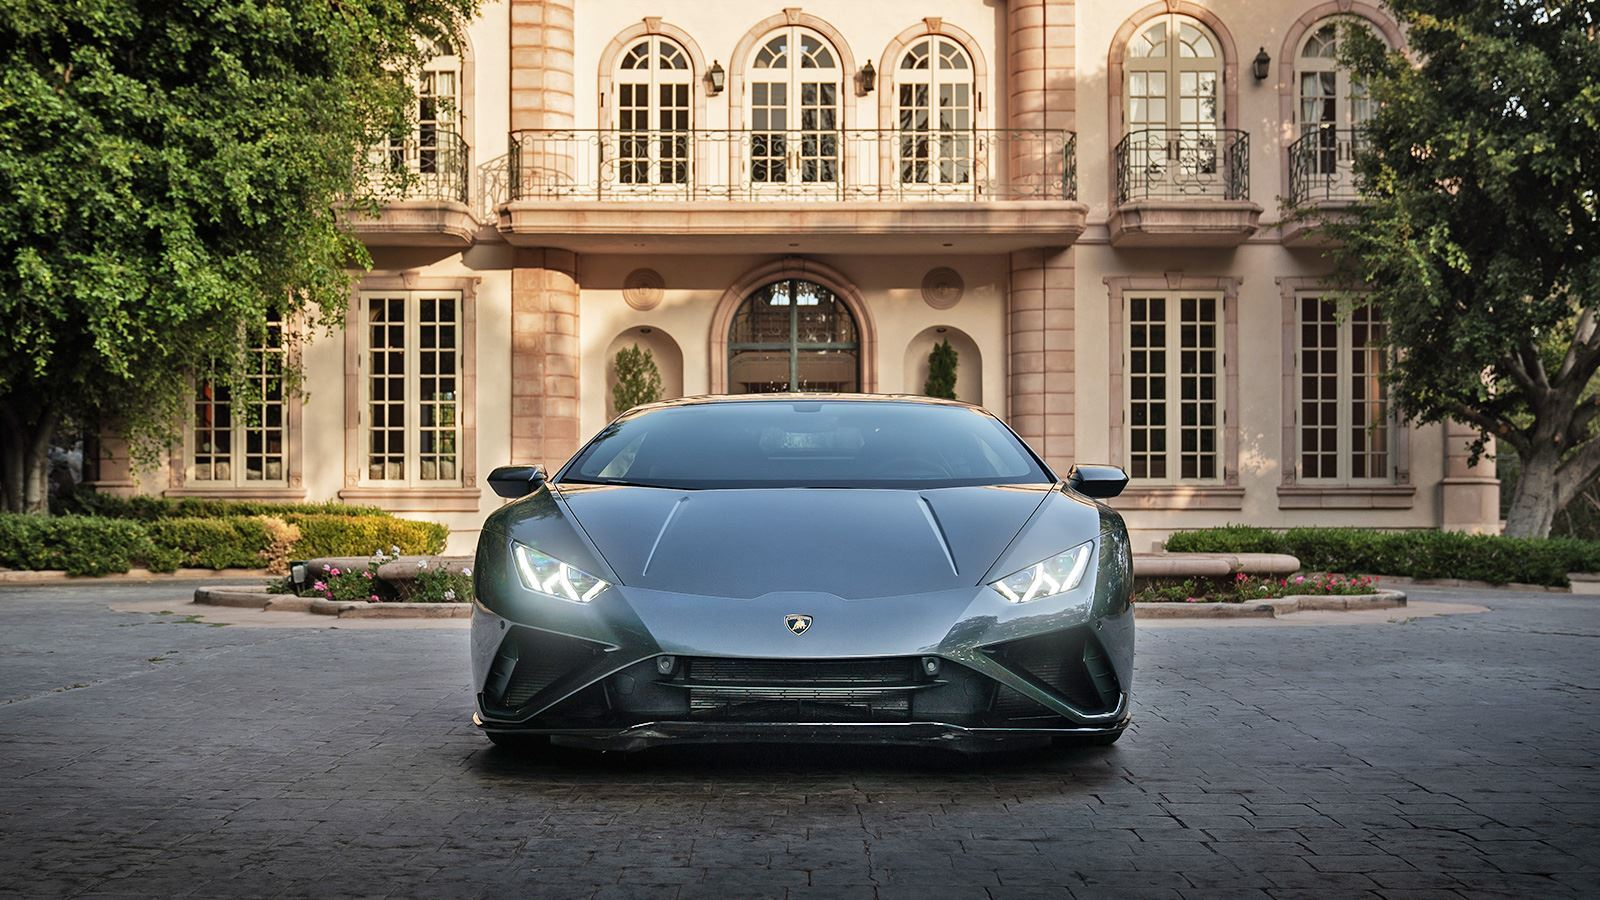 Automobili Lamborghini and Lady Gaga team up for charity sweepstake to support communities disproportionately impacted by the pandemic - Image 3